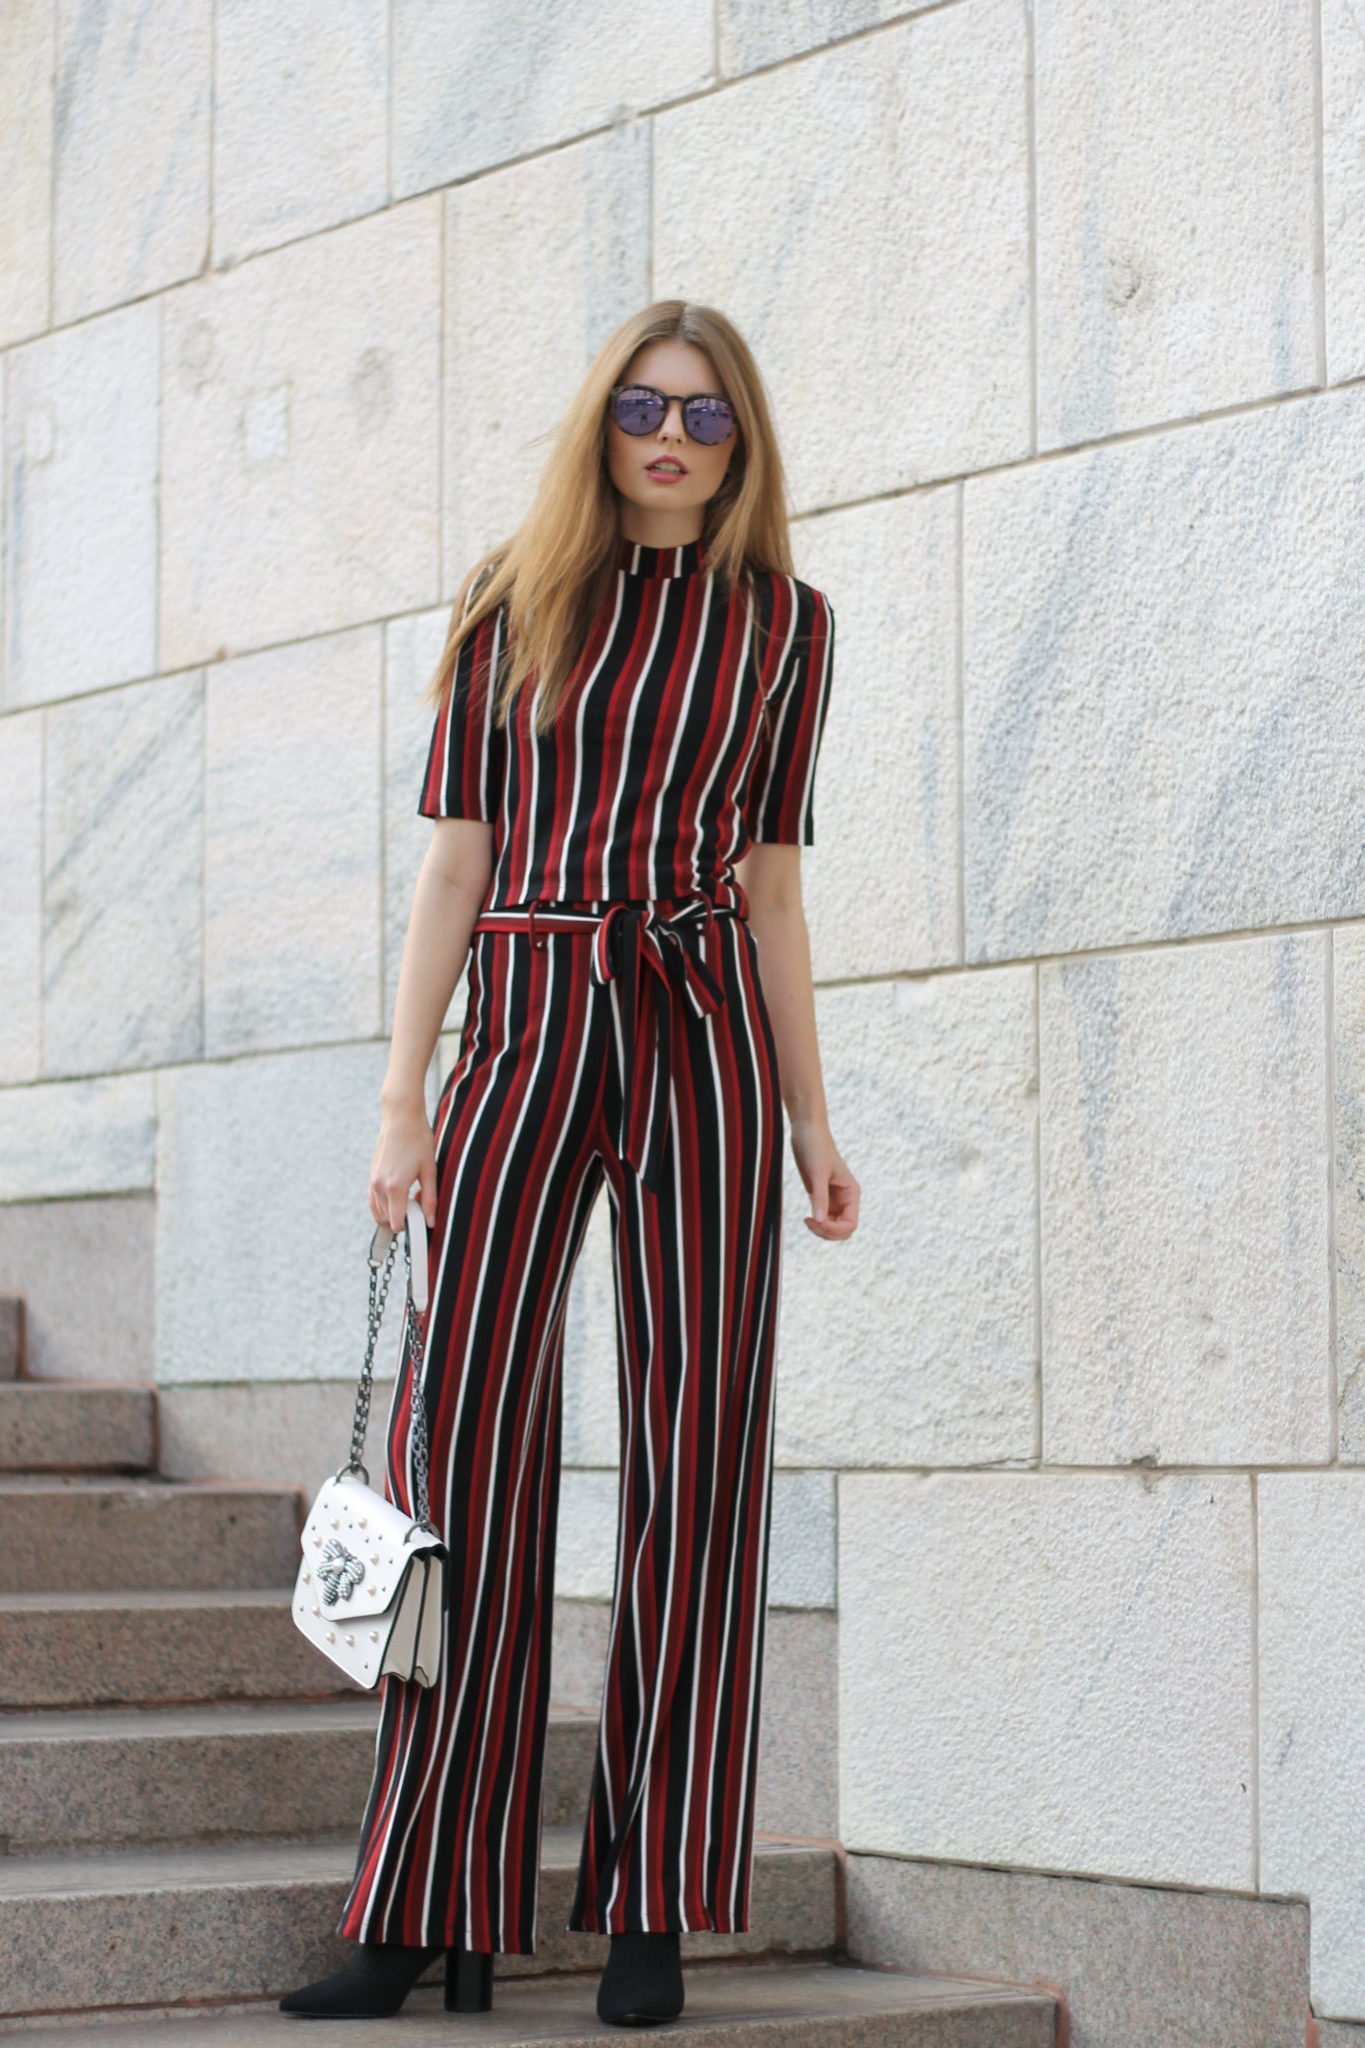 IMG 1693 e1519228365663 - BOLD STRIPED JUMPSUIT I MILAN